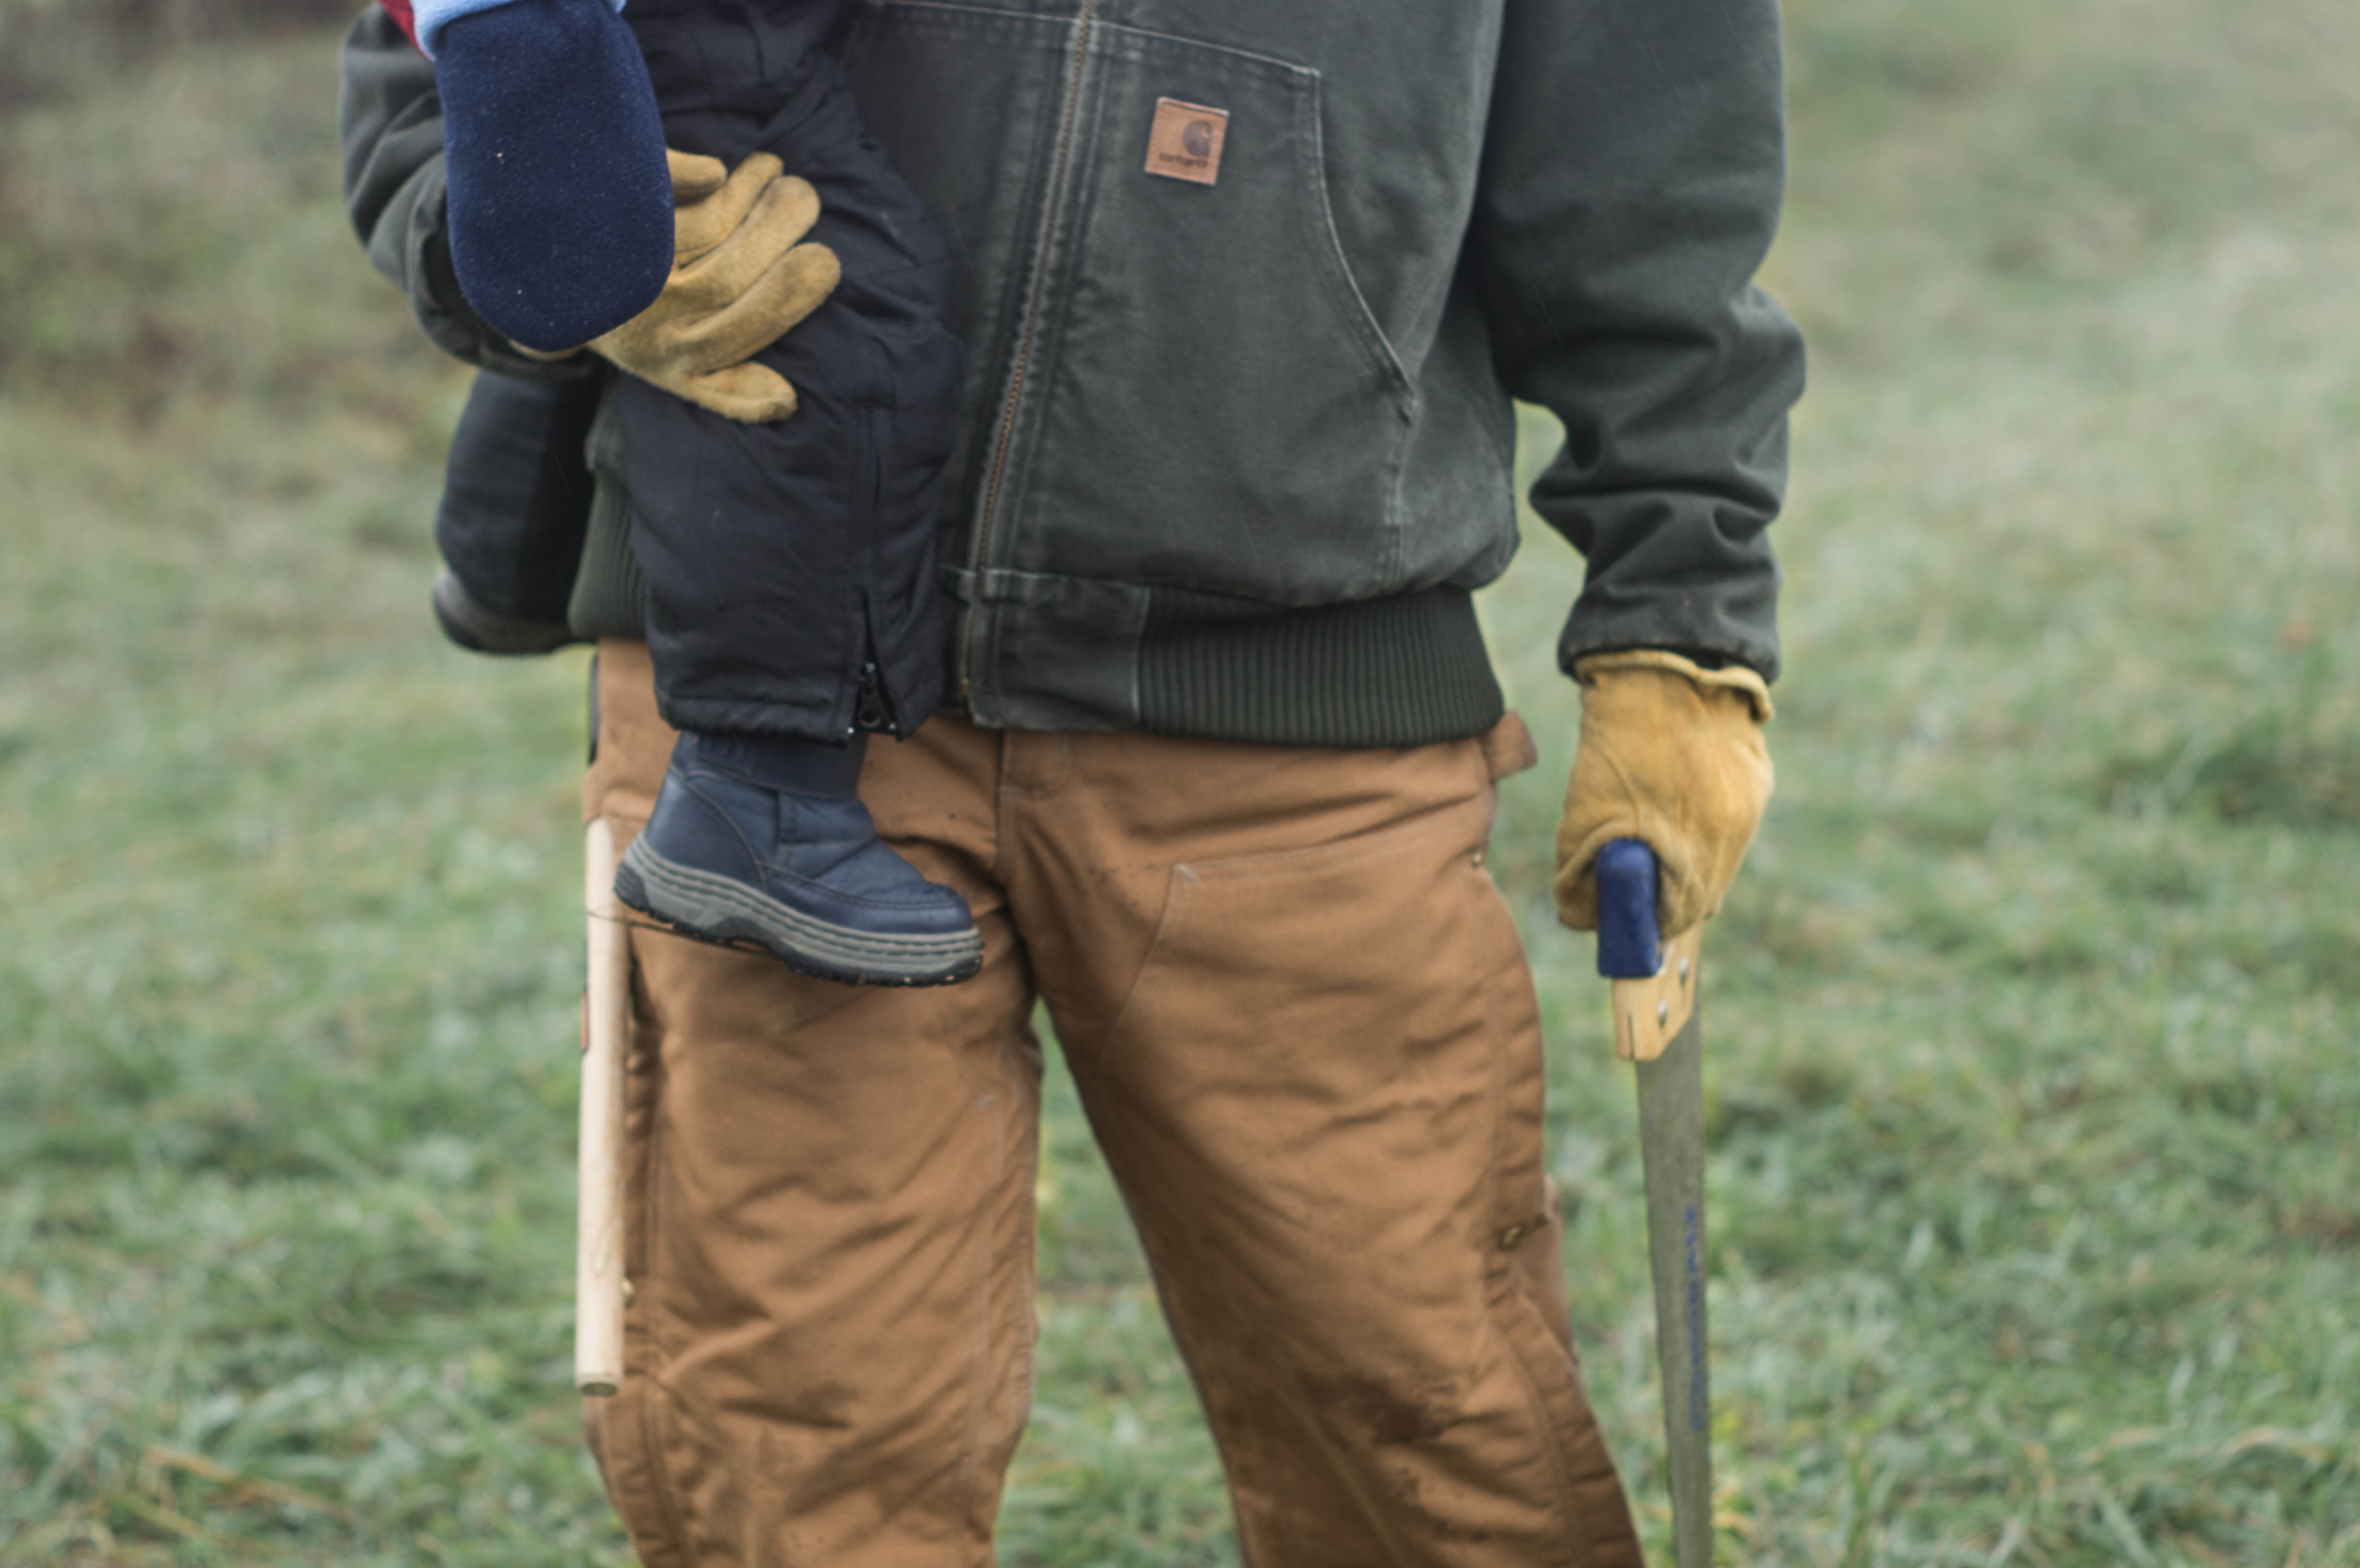 brother-holding-baby-with-hatchet